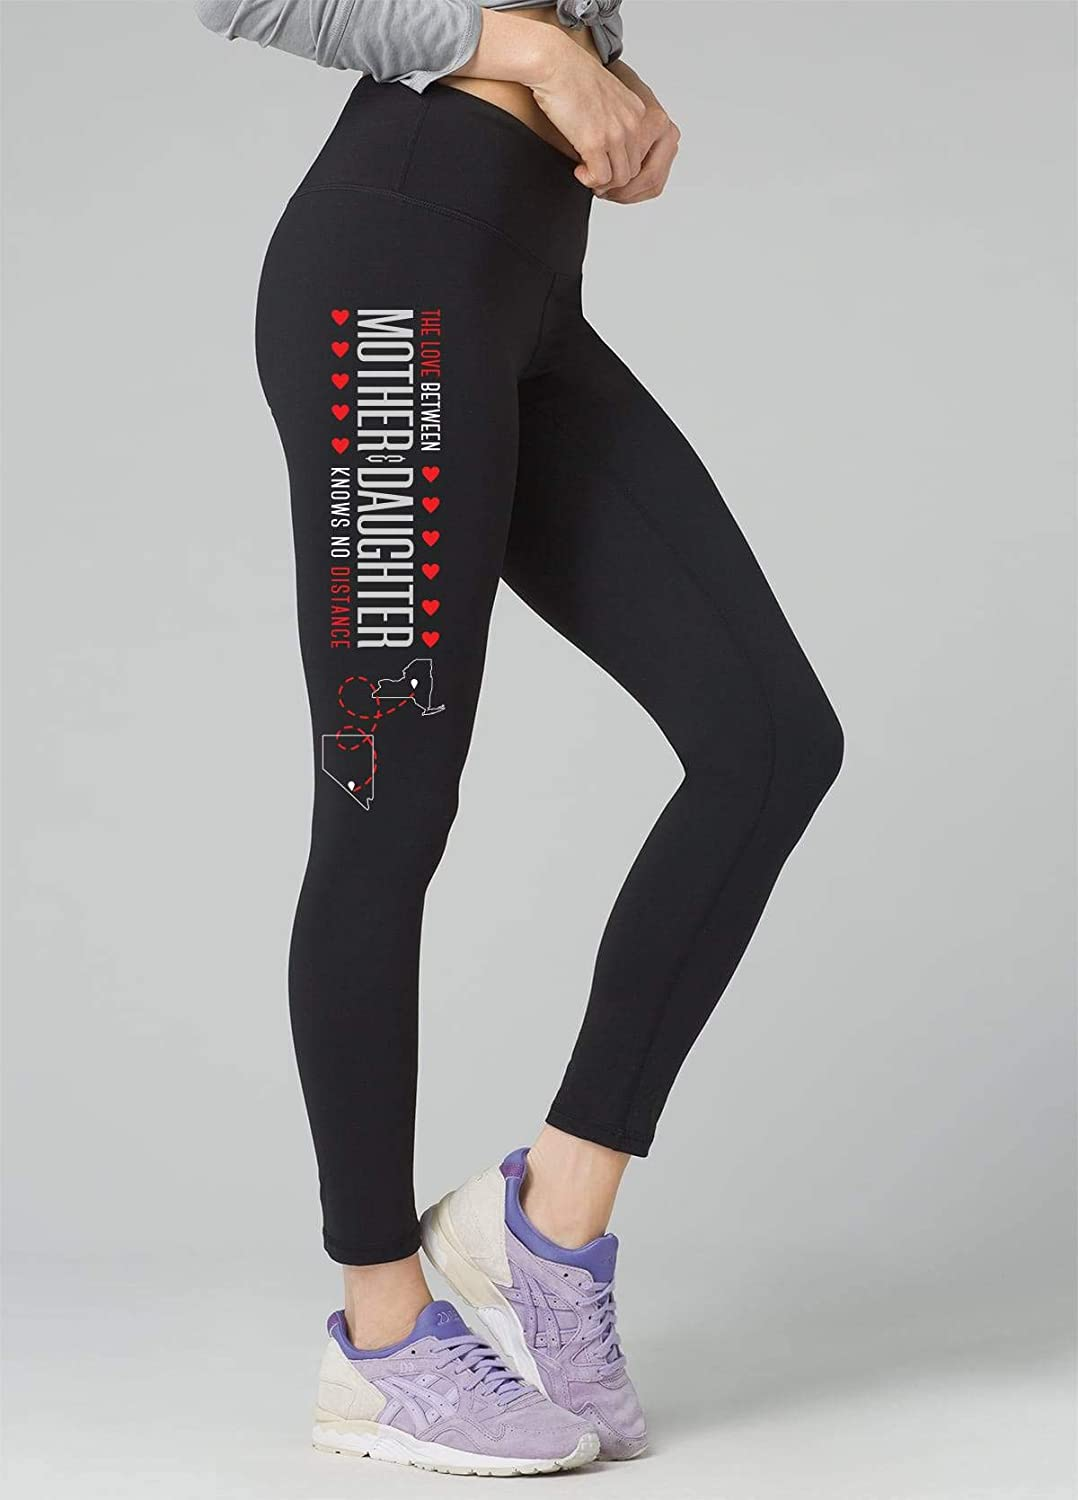 Leggings New York NY Nevada NV The Love Between Mother /& Daughter Knows no Distance